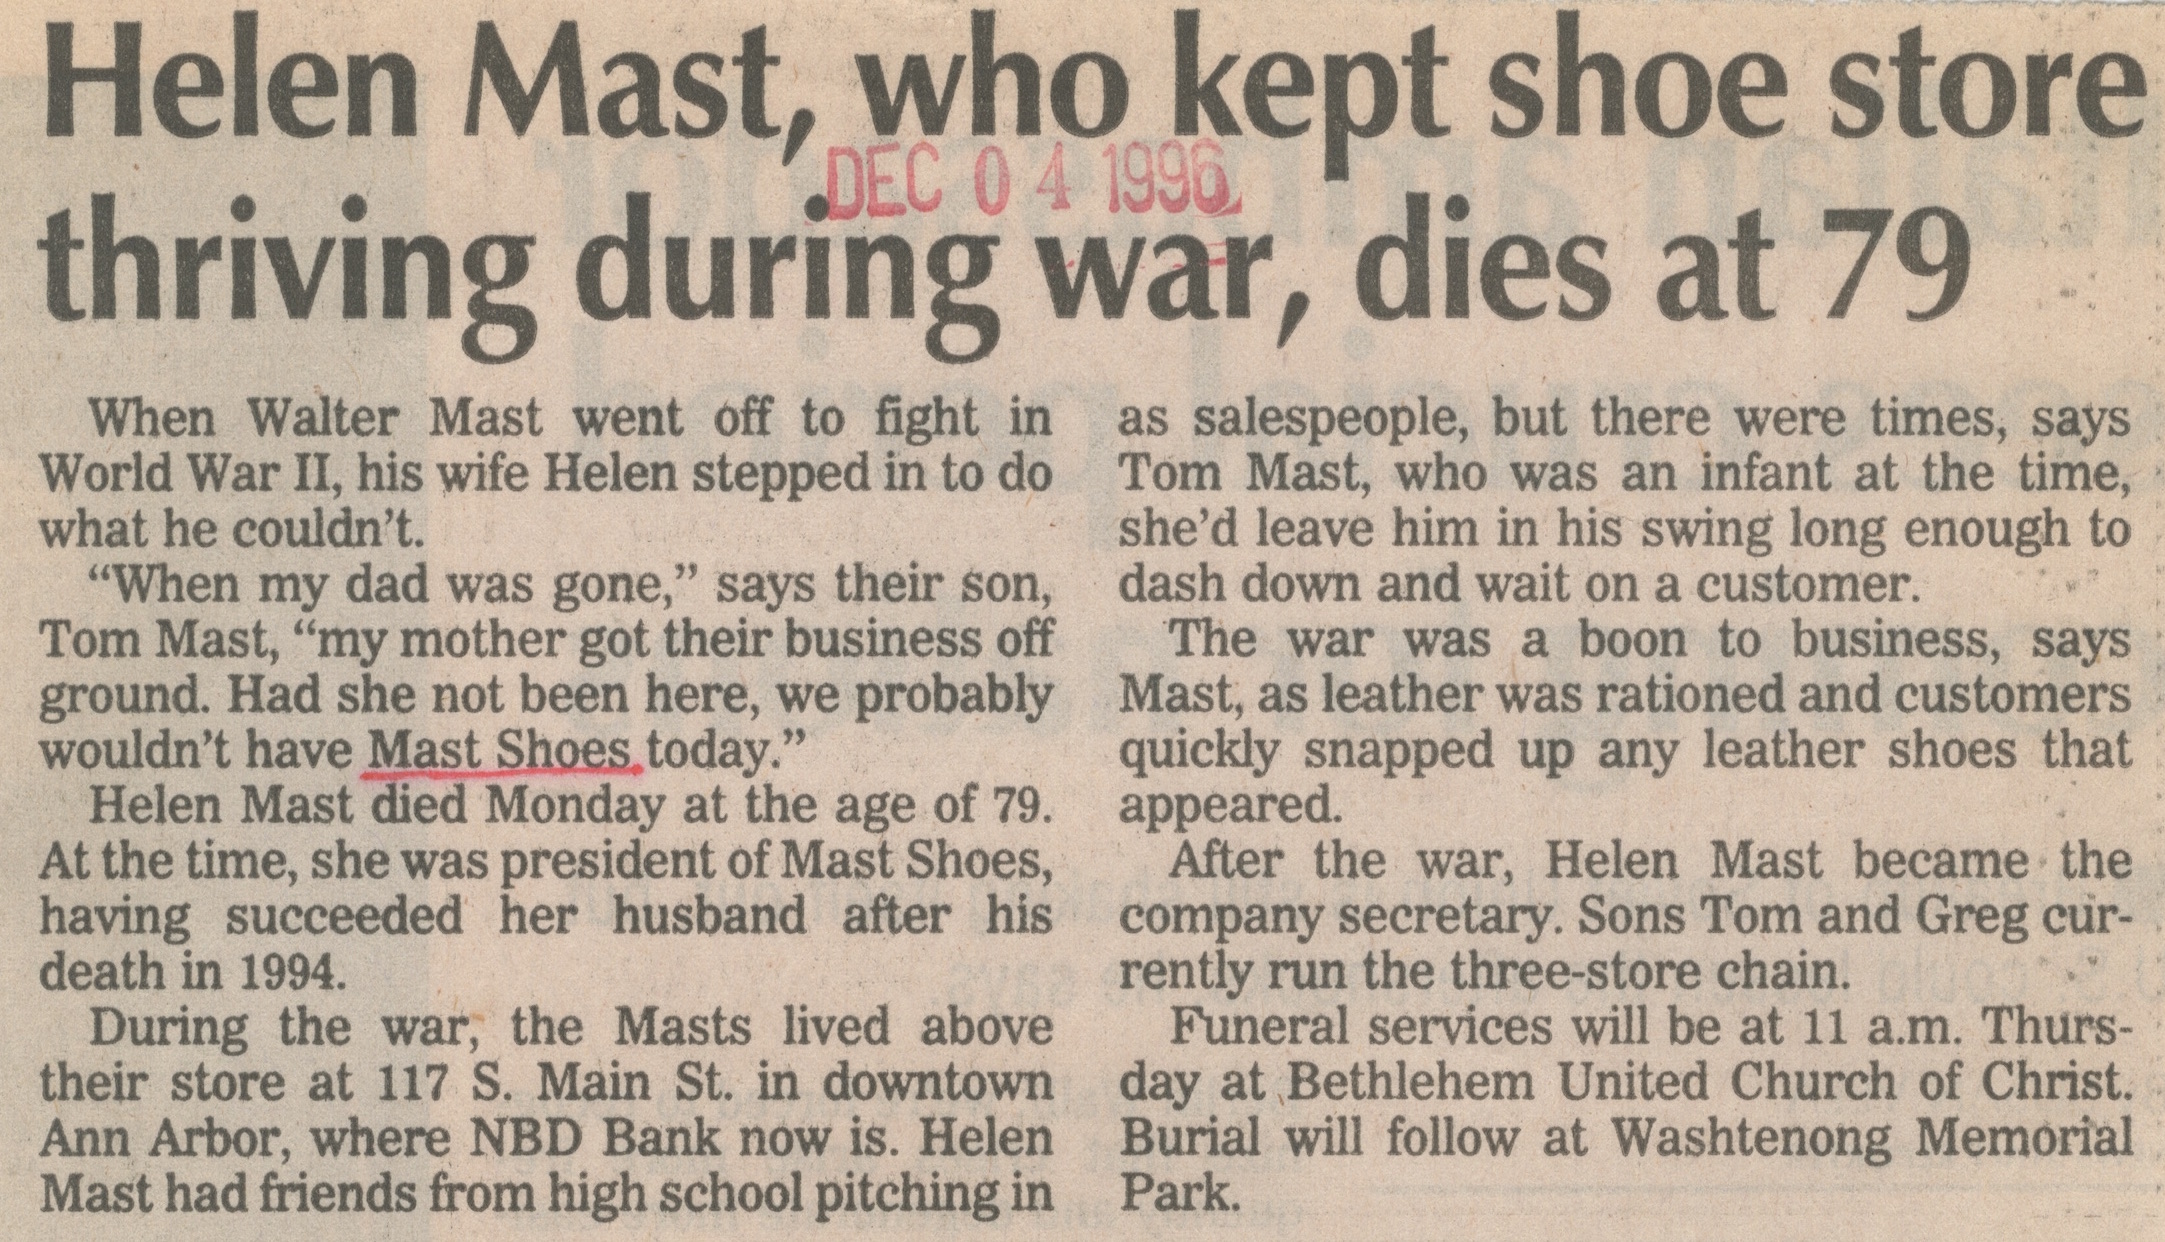 Helen Mast, Who Kept Shoe Store Thriving During War, Dies At 79 image